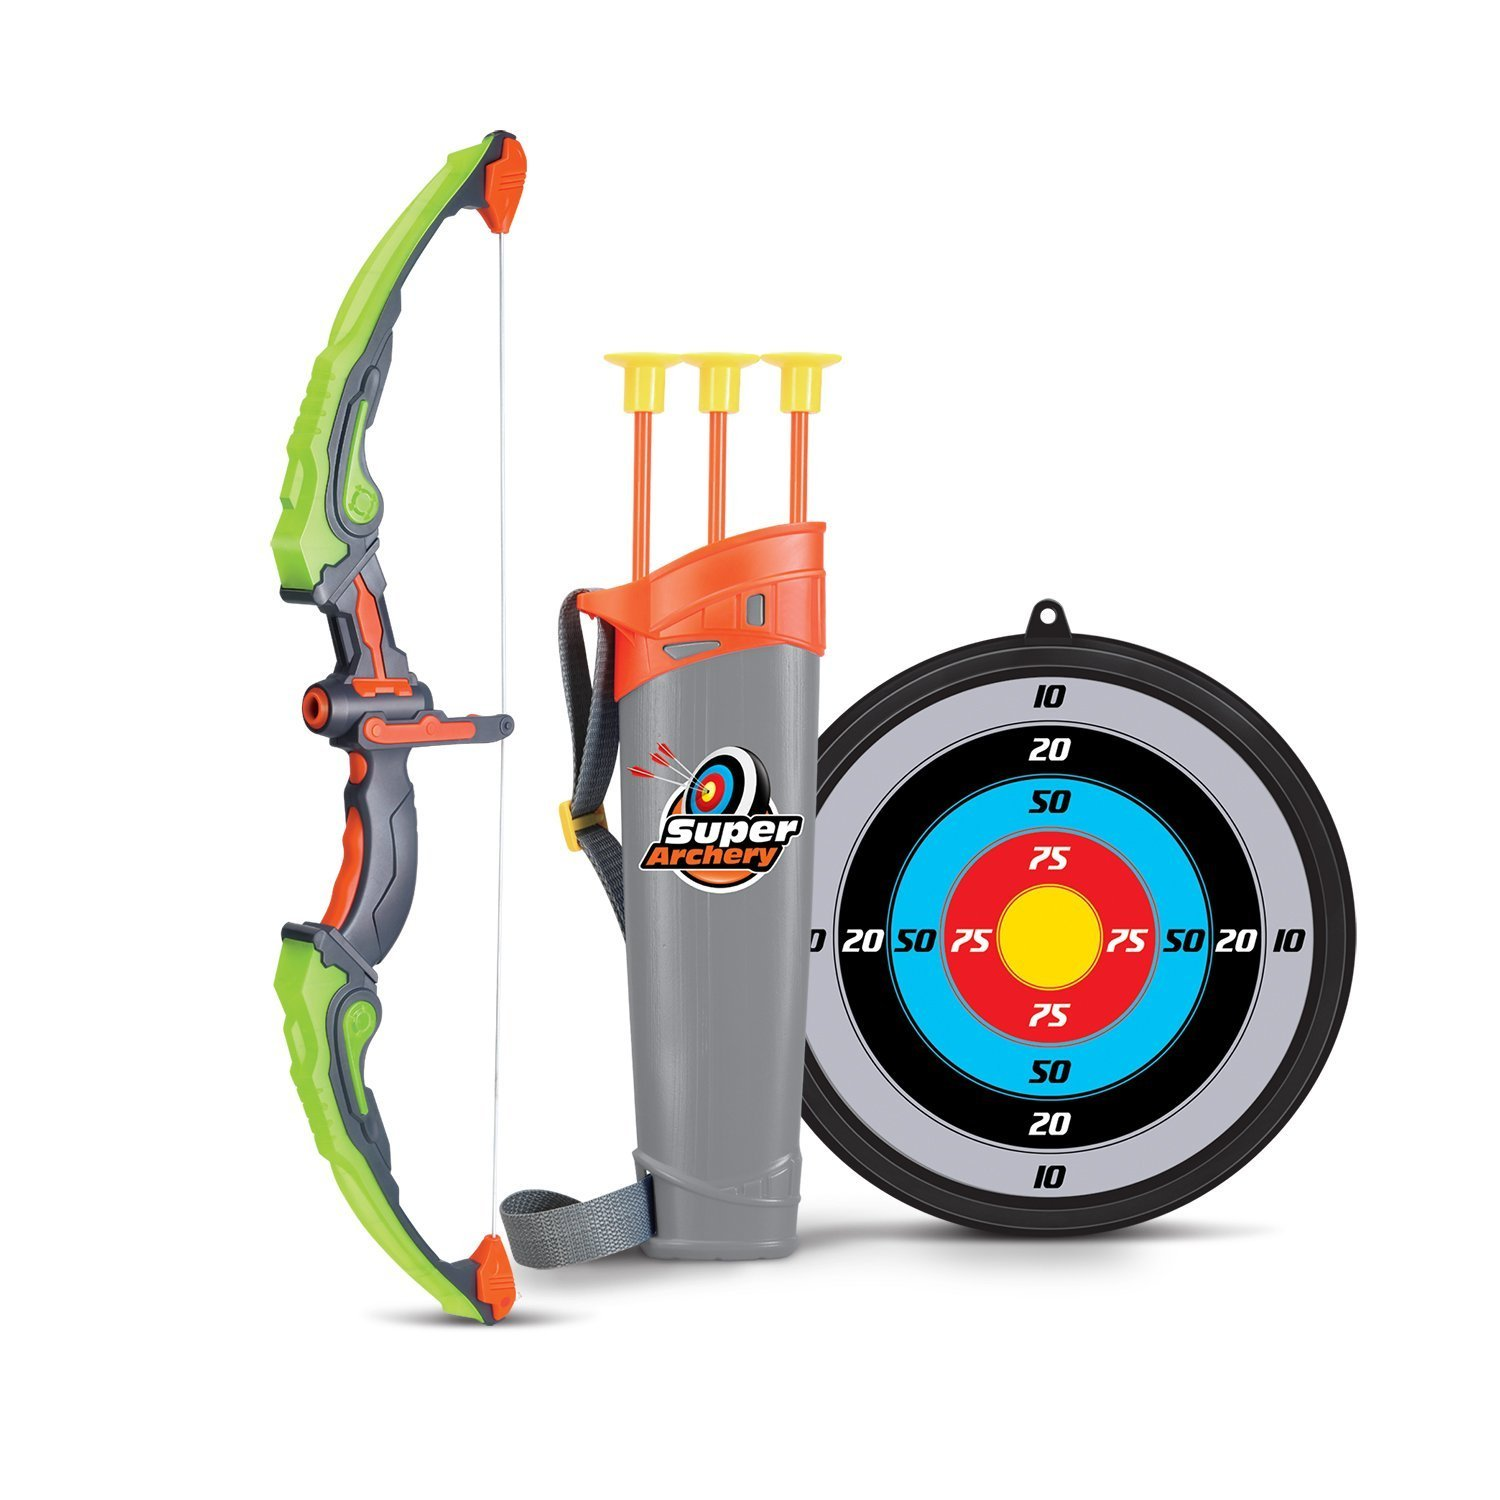 SainSmart Jr. Archery Set with Hunting Bow, Arrow, Quiver, Target, Hunting Series Toy for Kids